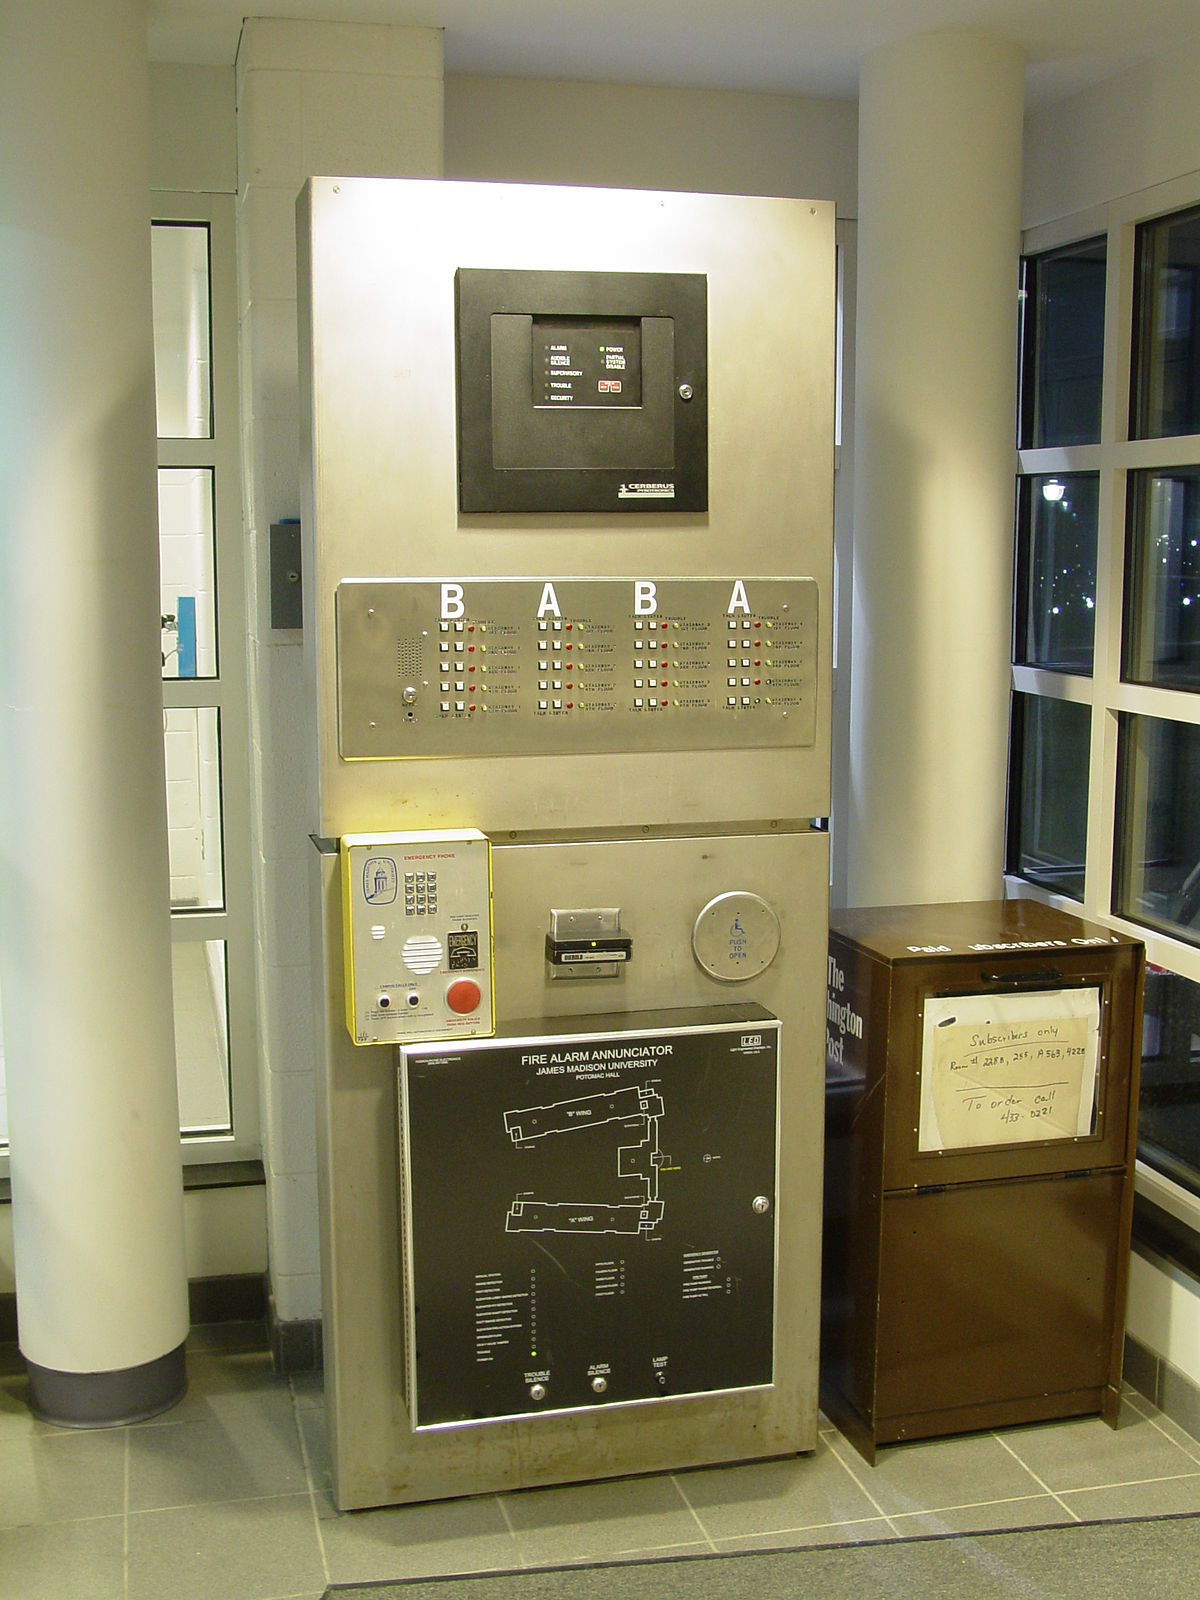 For A New Telephone Wiring Diagram For Installation Fire Alarm Control Panel Wikipedia